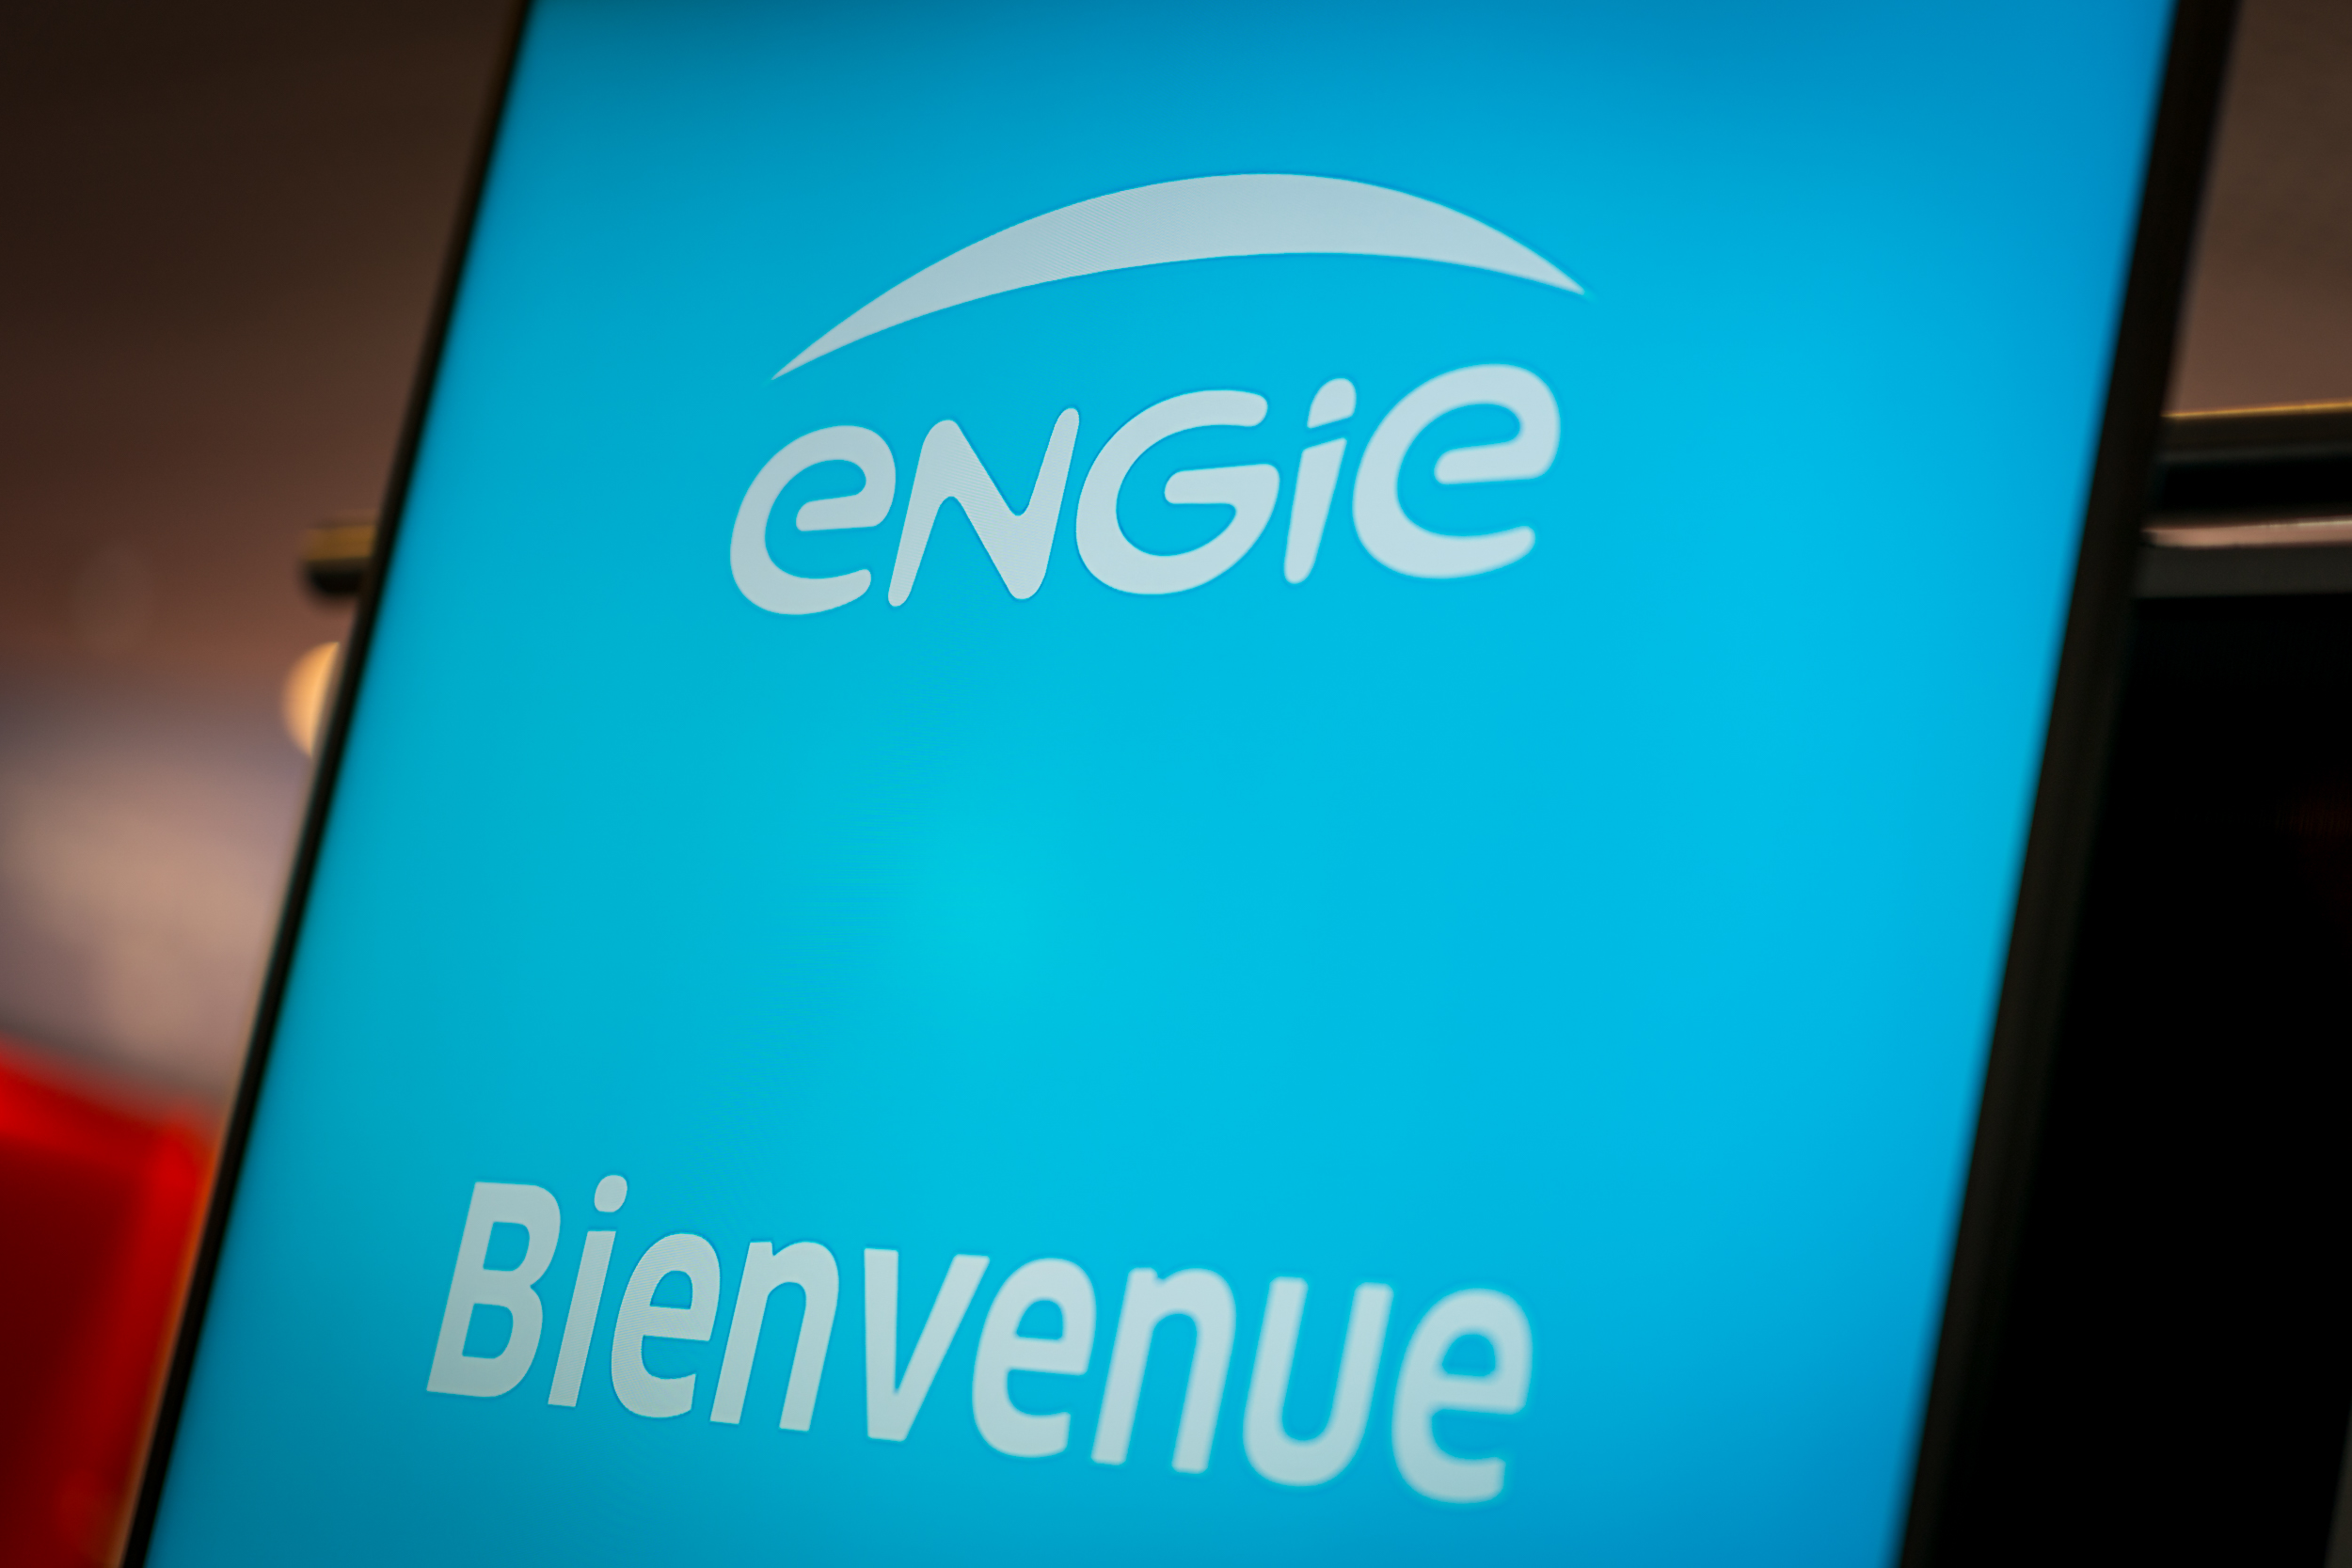 Engie_Convention France_21-05-19_Florian Leger_HD_N°-57.jpg